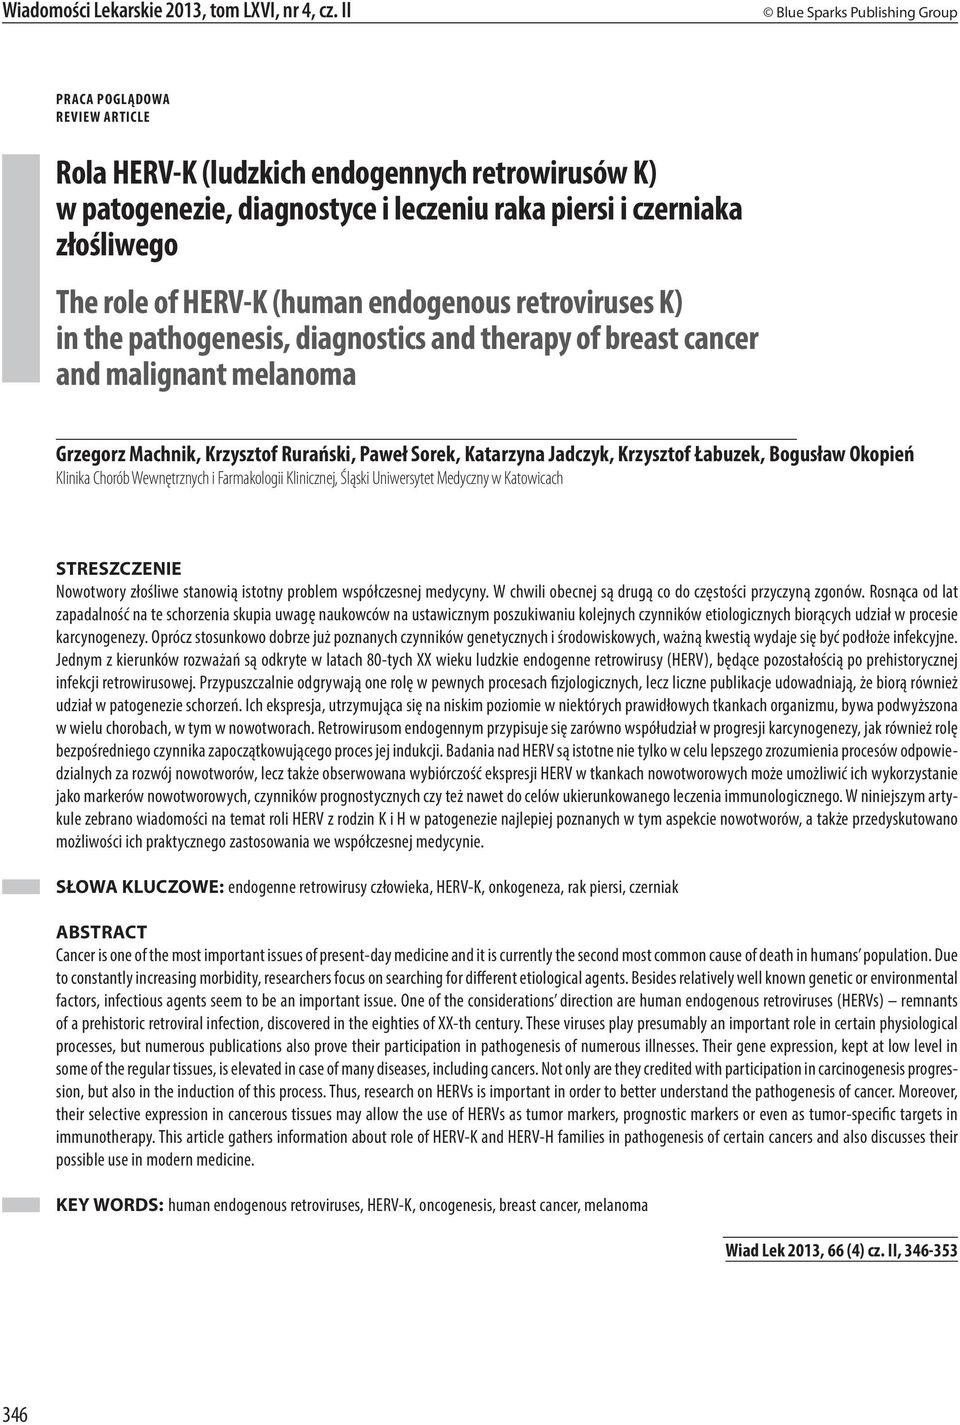 HERV-K (human endogenous retroviruses K) in the pathogenesis, diagnostics and therapy of breast cancer and malignant melanoma Grzegorz Machnik, Krzysztof Rurański, Paweł Sorek, Katarzyna Jadczyk,